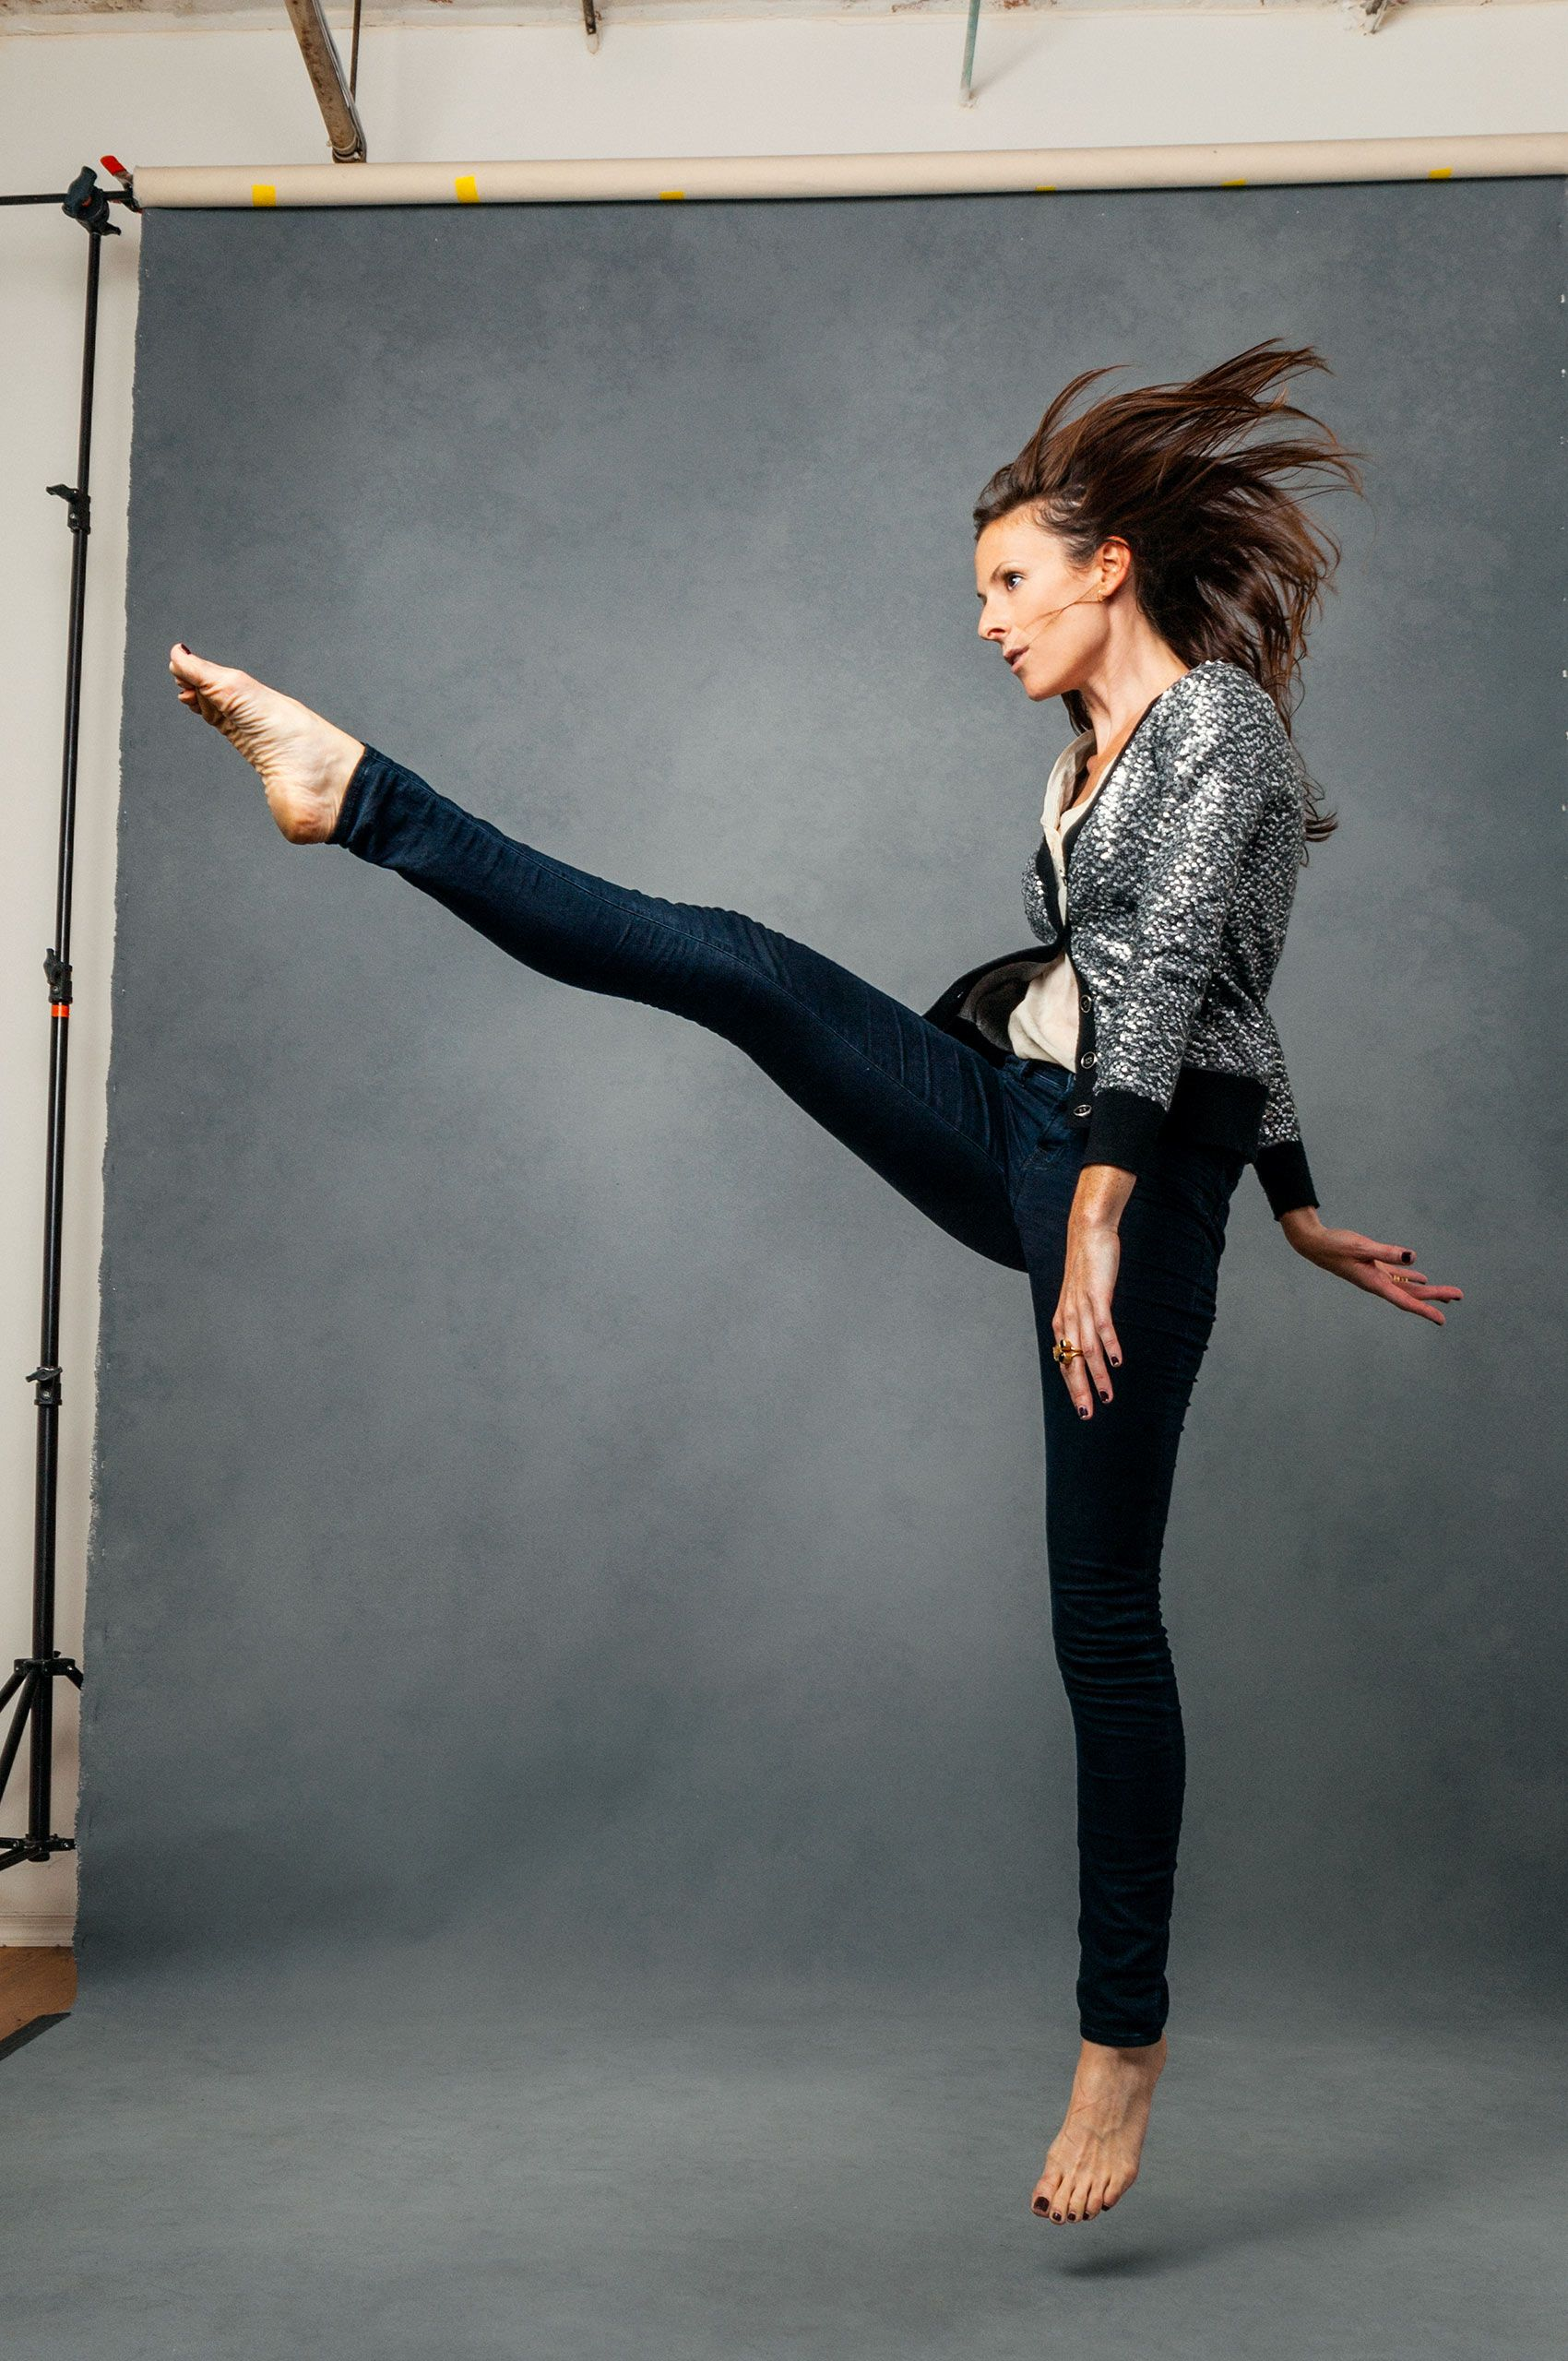 Woman-kicking-HenrikOlundPhotography.jpg